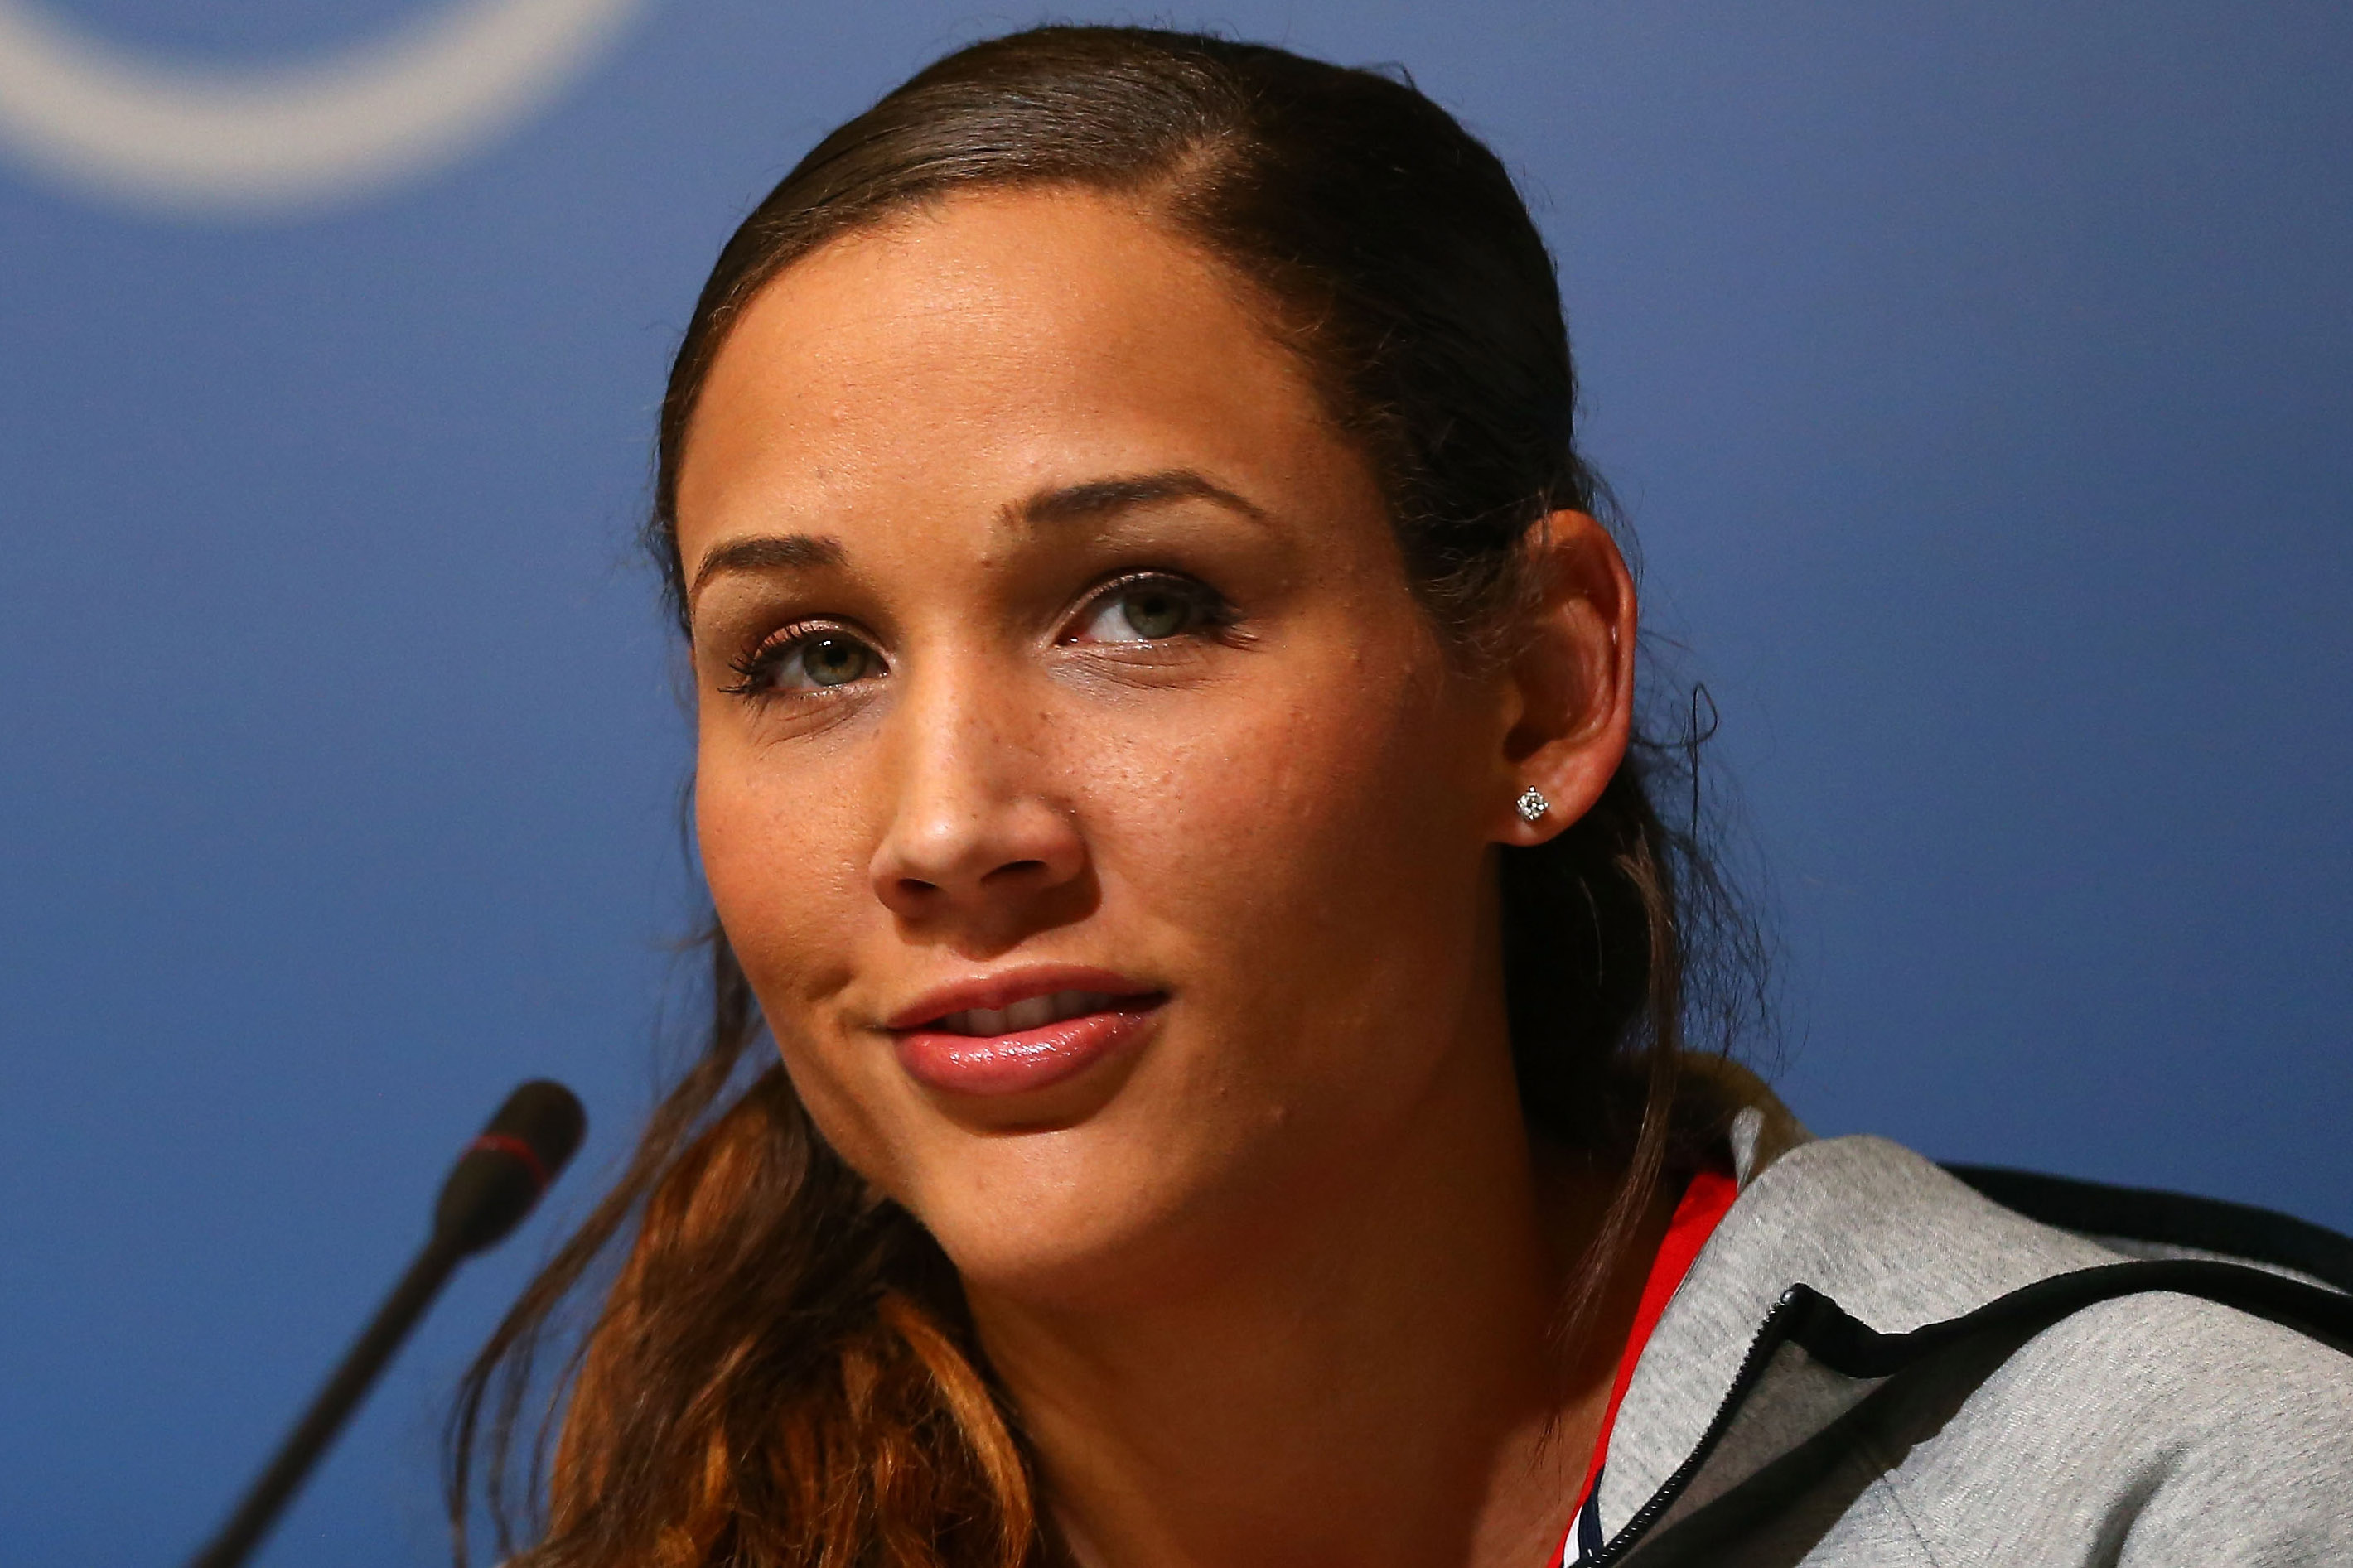 For Lolo Jones at the Olympics, Everything Is Image - The New York Times